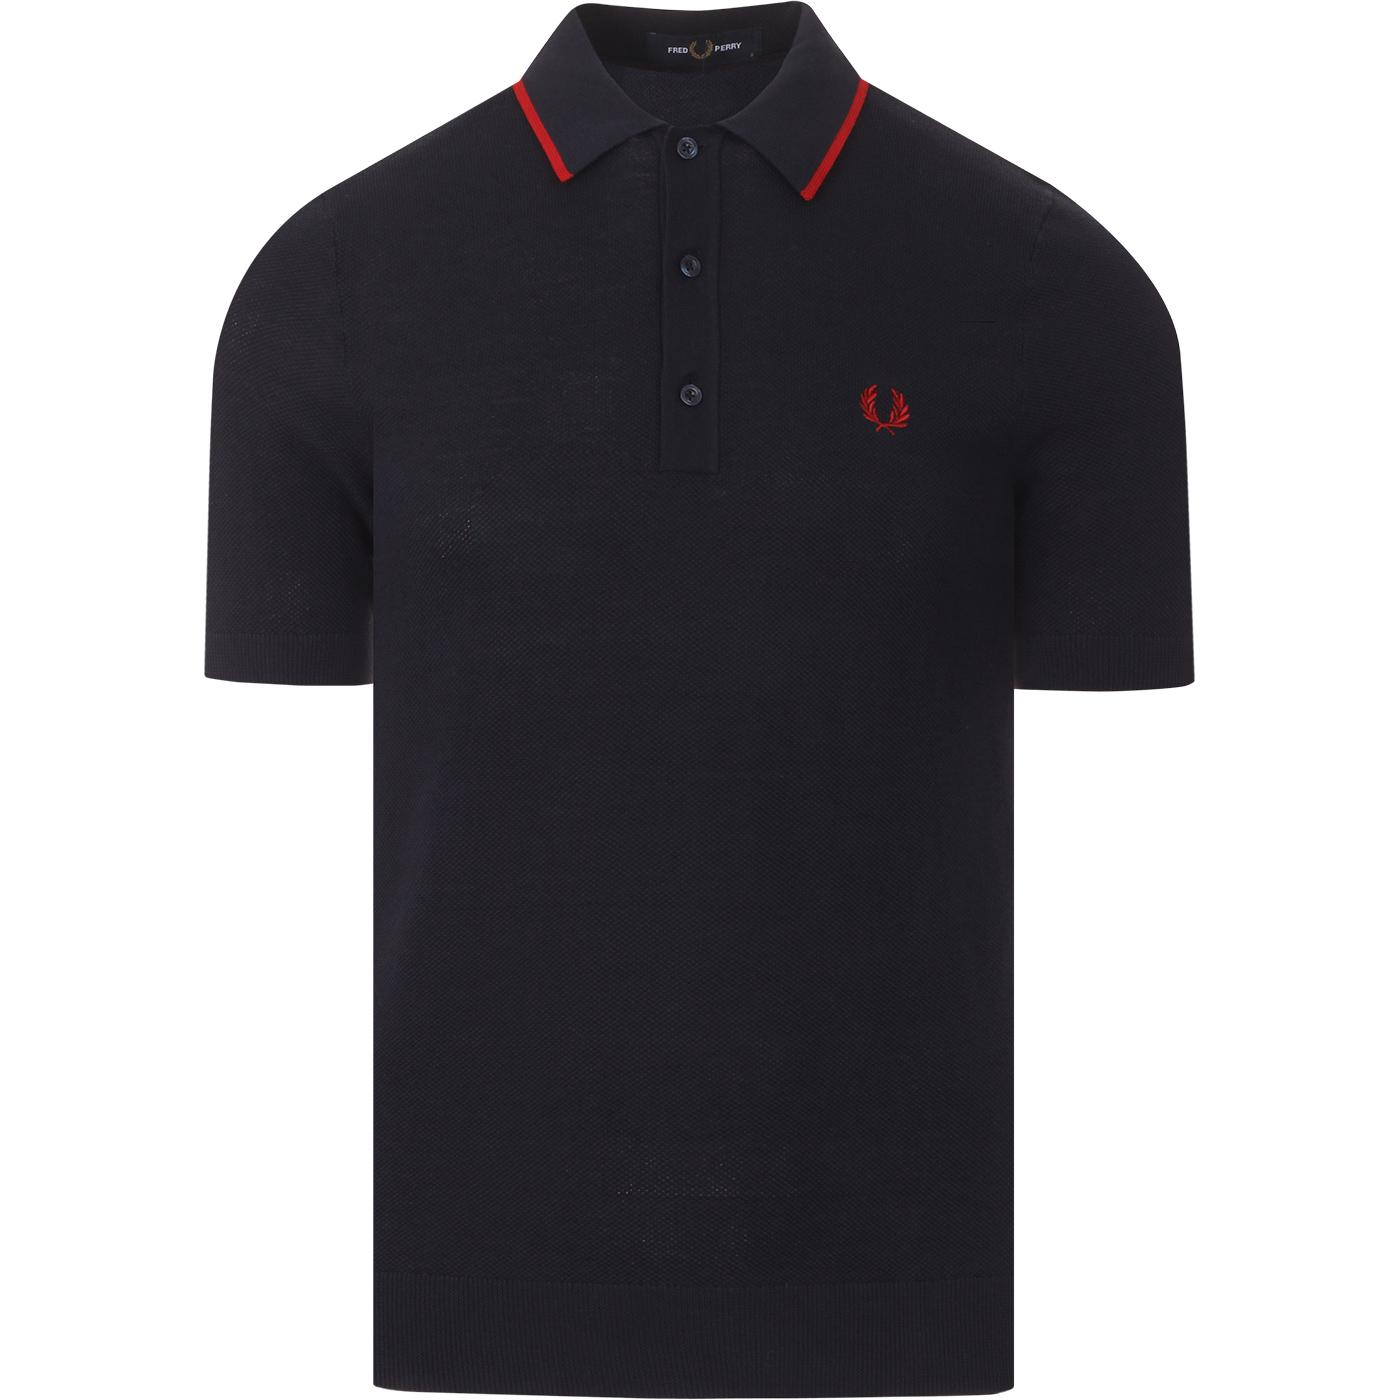 FRED PERRY Mod Tipped Knitted Polo Shirt (DC)